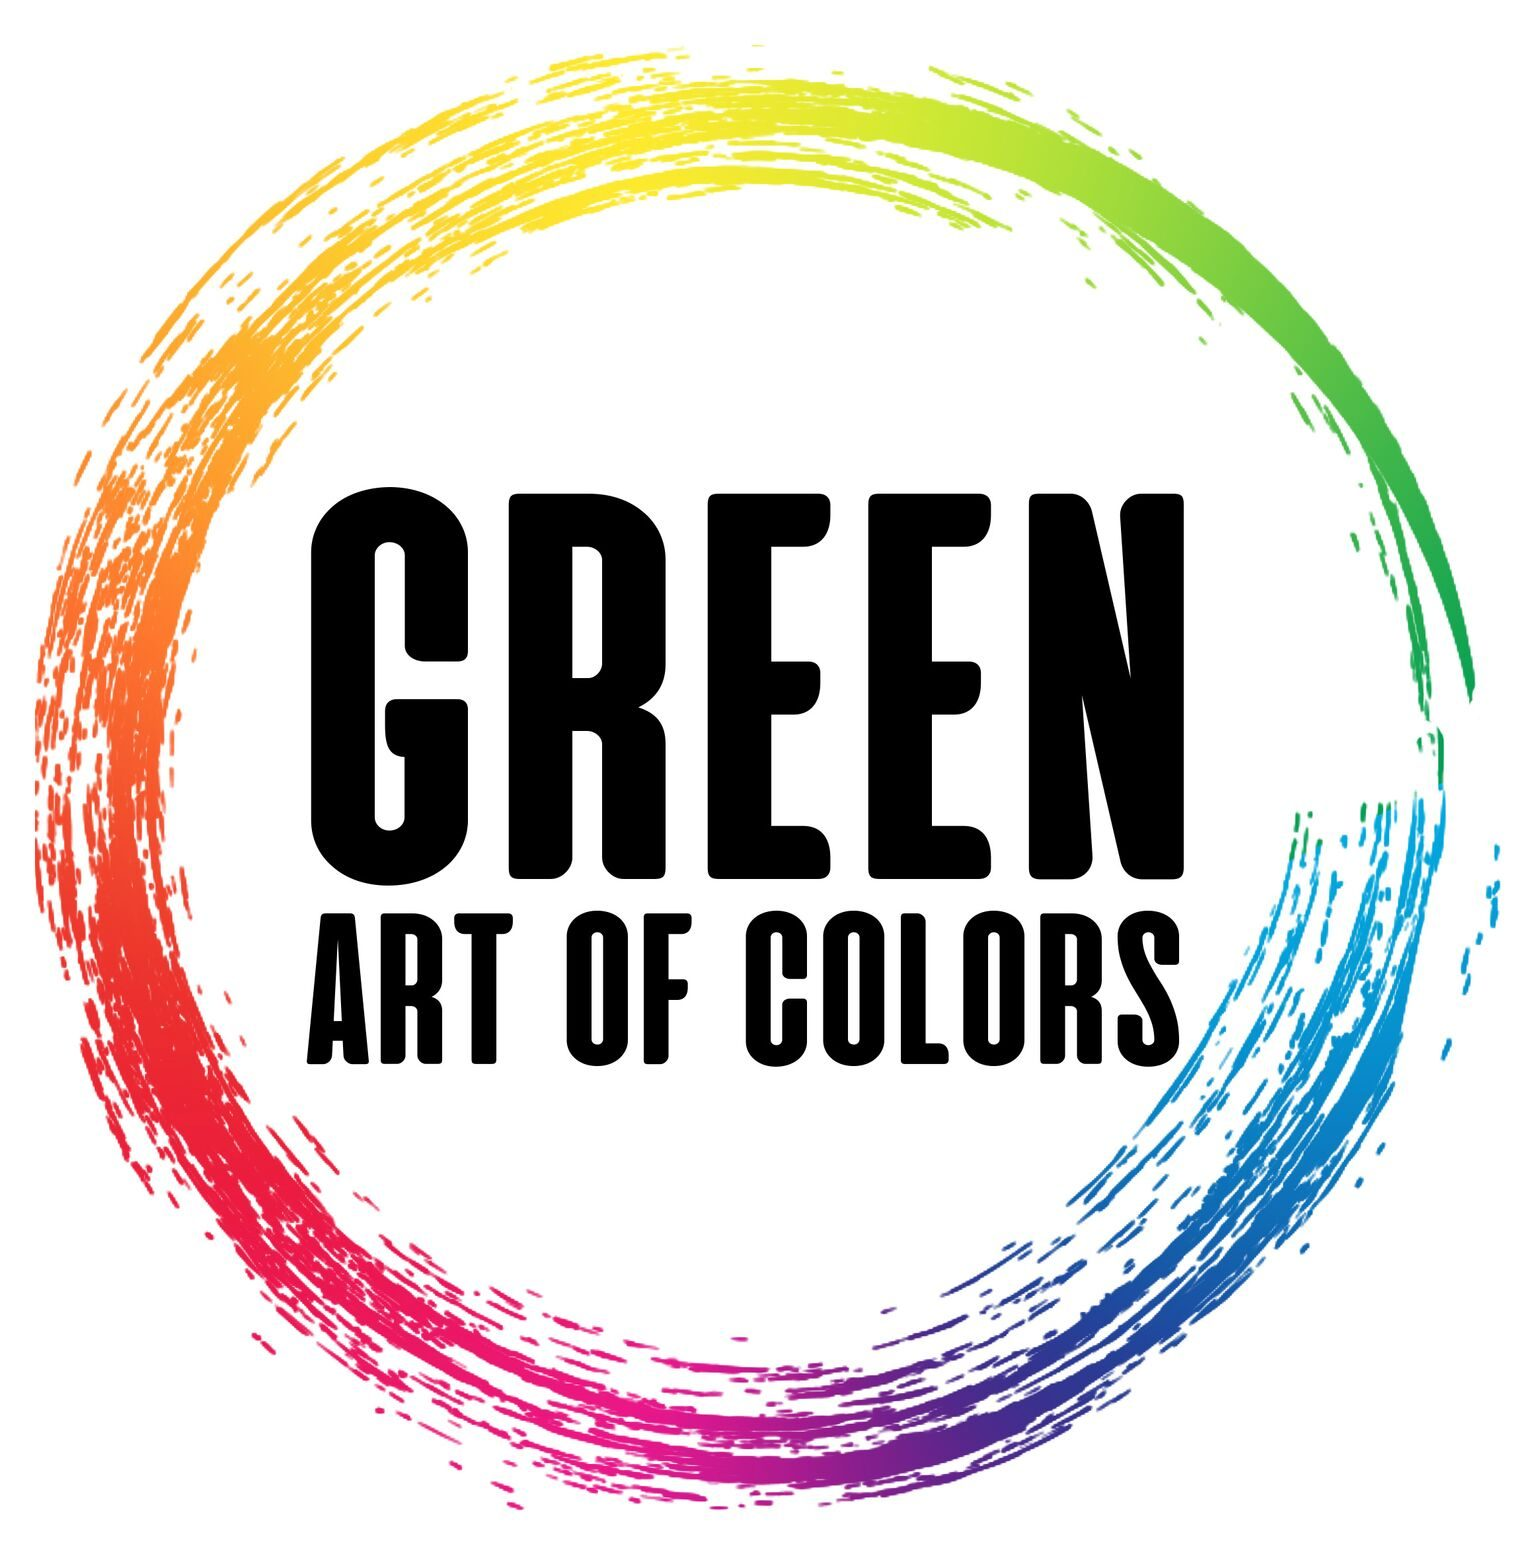 green art of color